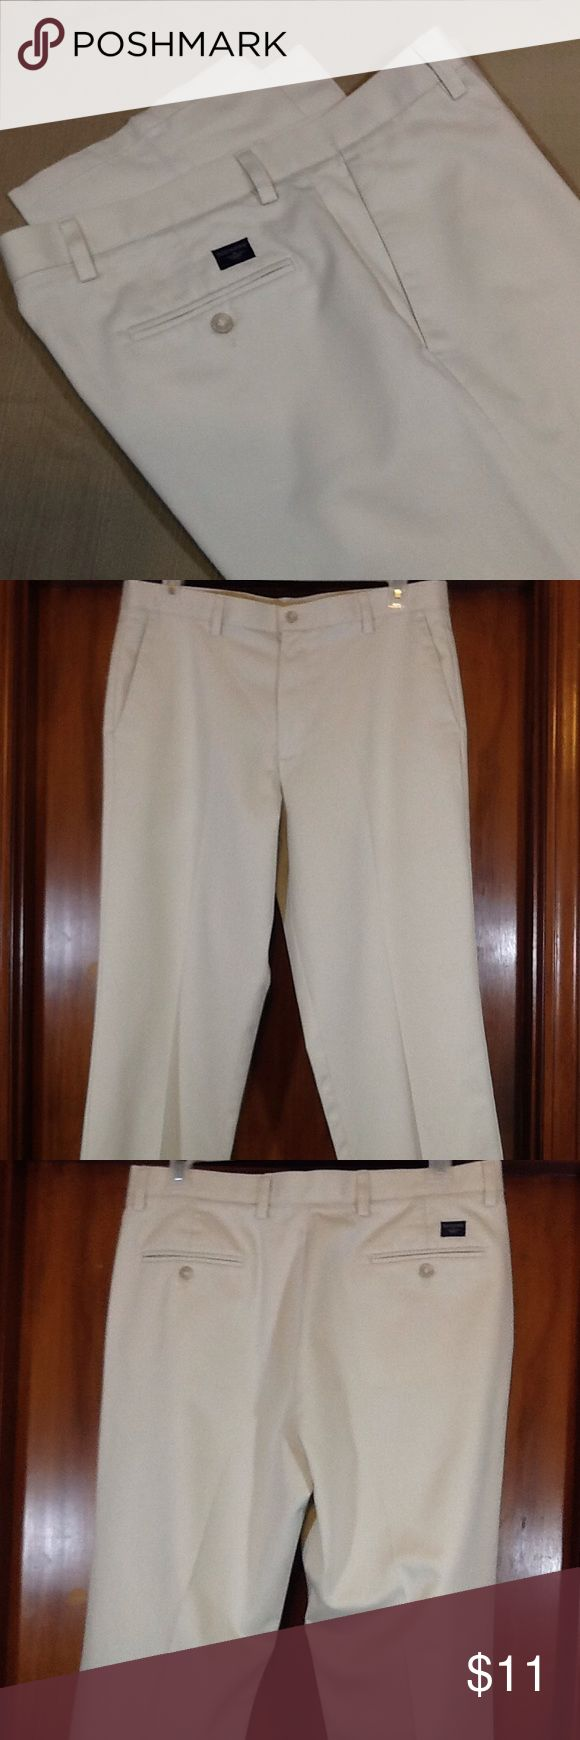 Dockers flat front men's khaki pants Very good pre-owned condition. Stone color, slant pockets in 100% cotton. Actual waist is 36, rise is 12 and inseam is 34 Dockers Pants Chinos & Khakis